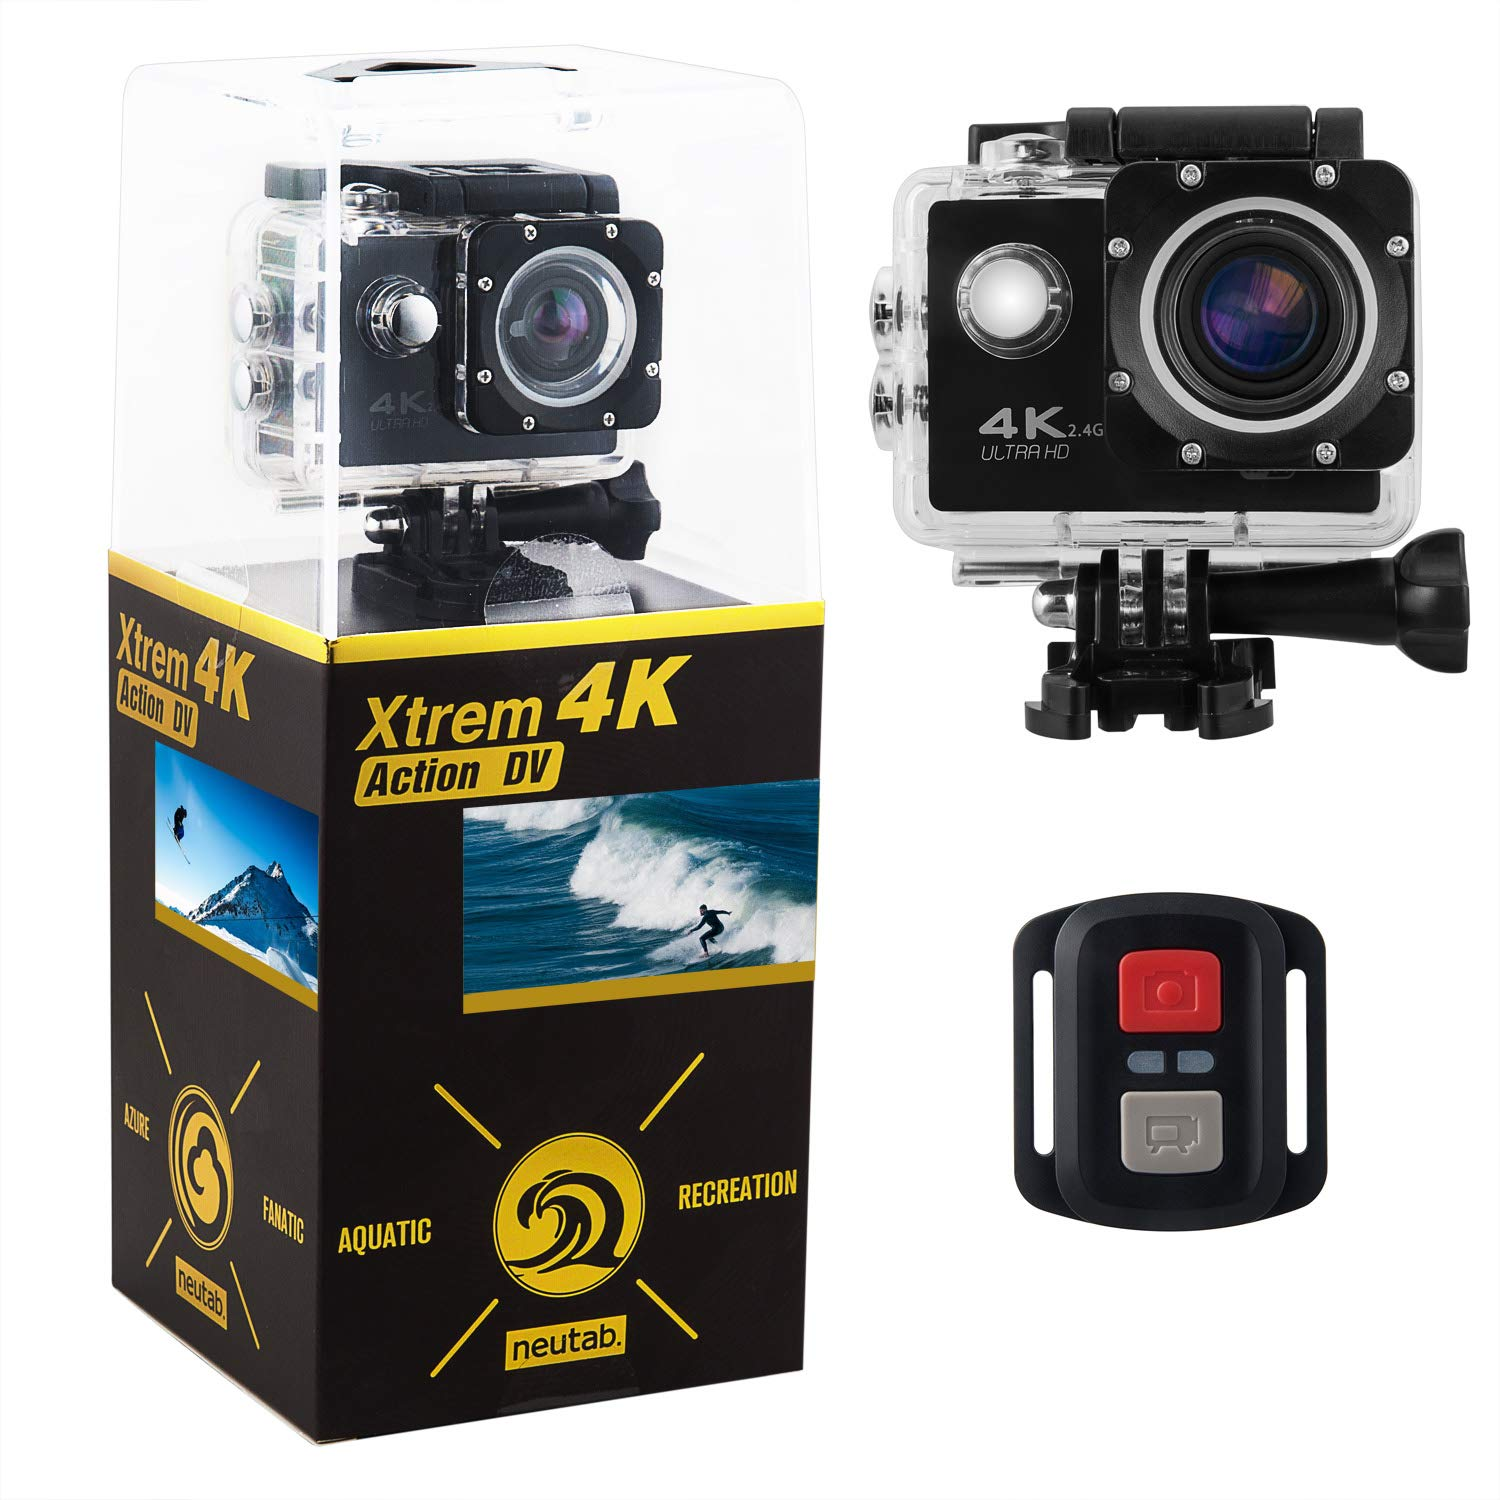 NeuTab Xtrem 4K Action Camera, Dual 2 Inch LCD Screen 16 MP Sony Image Sensor 170 Wide-Angle Lens Sports Camera 100 FT Waterproof Case Included in Accessories Kit (Limited time Offer)